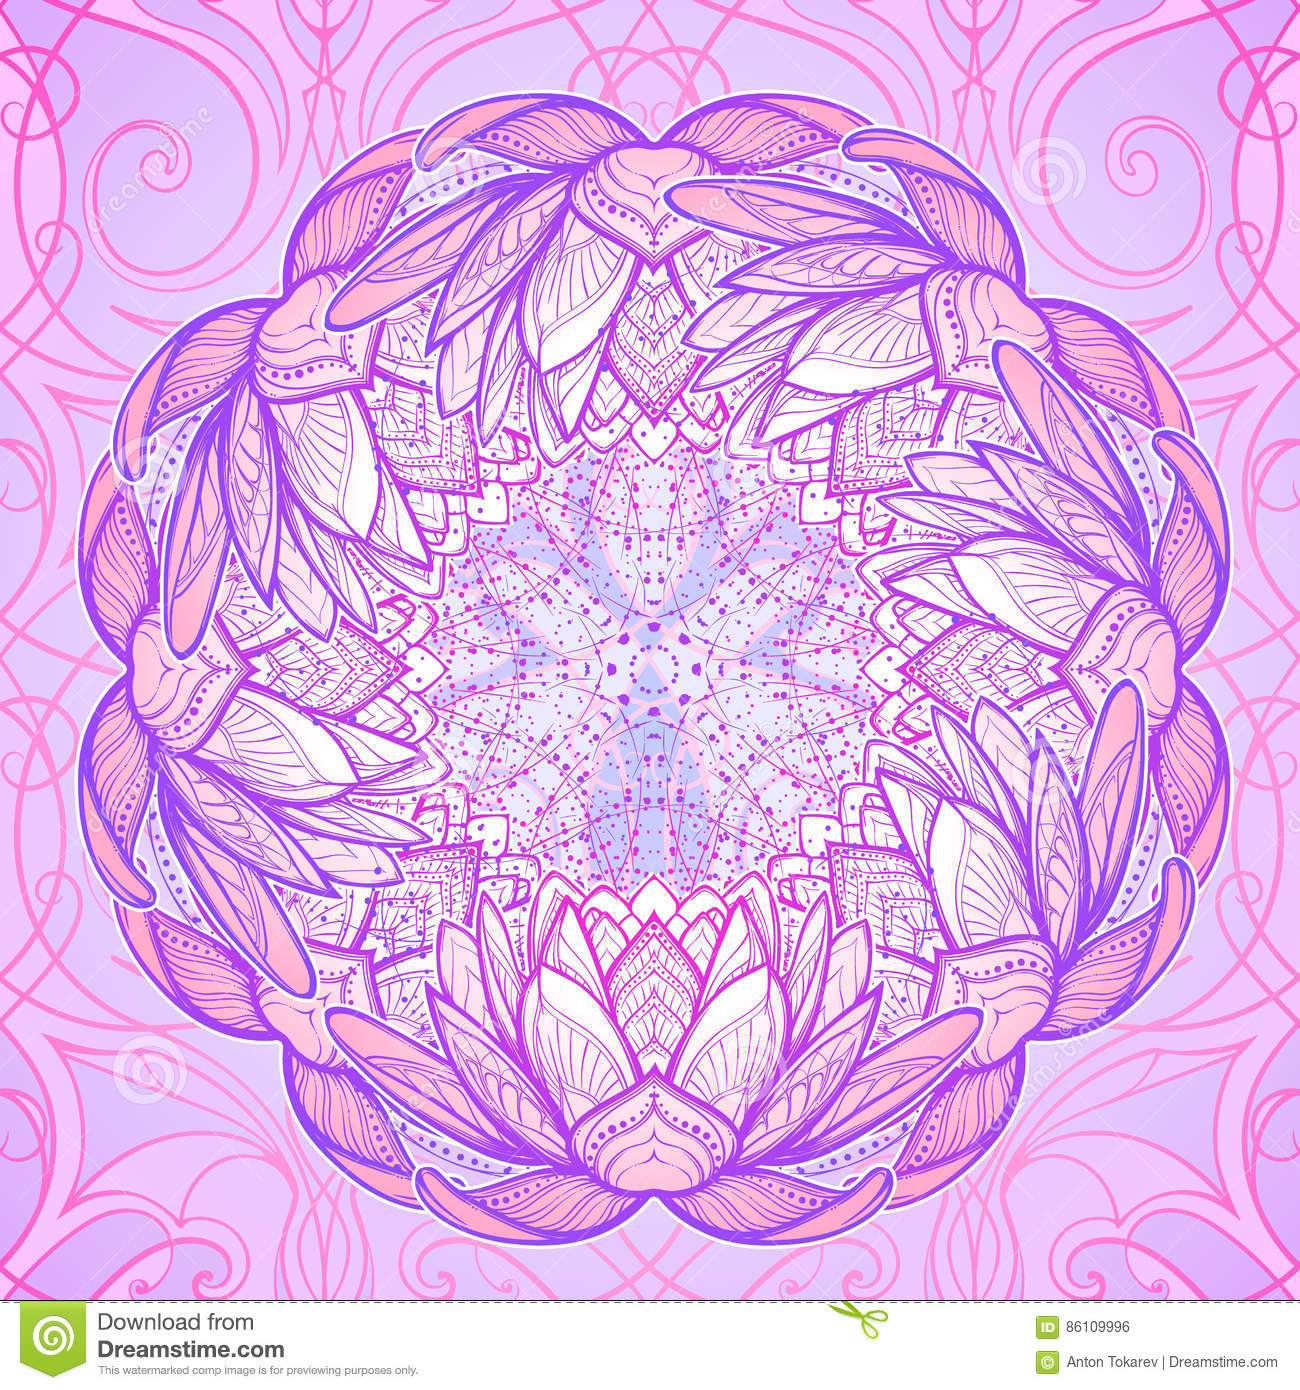 Lotus flower intricate stylized linear drawing isolated on background flower hindu illustration intricate isolated lotus dhlflorist Gallery